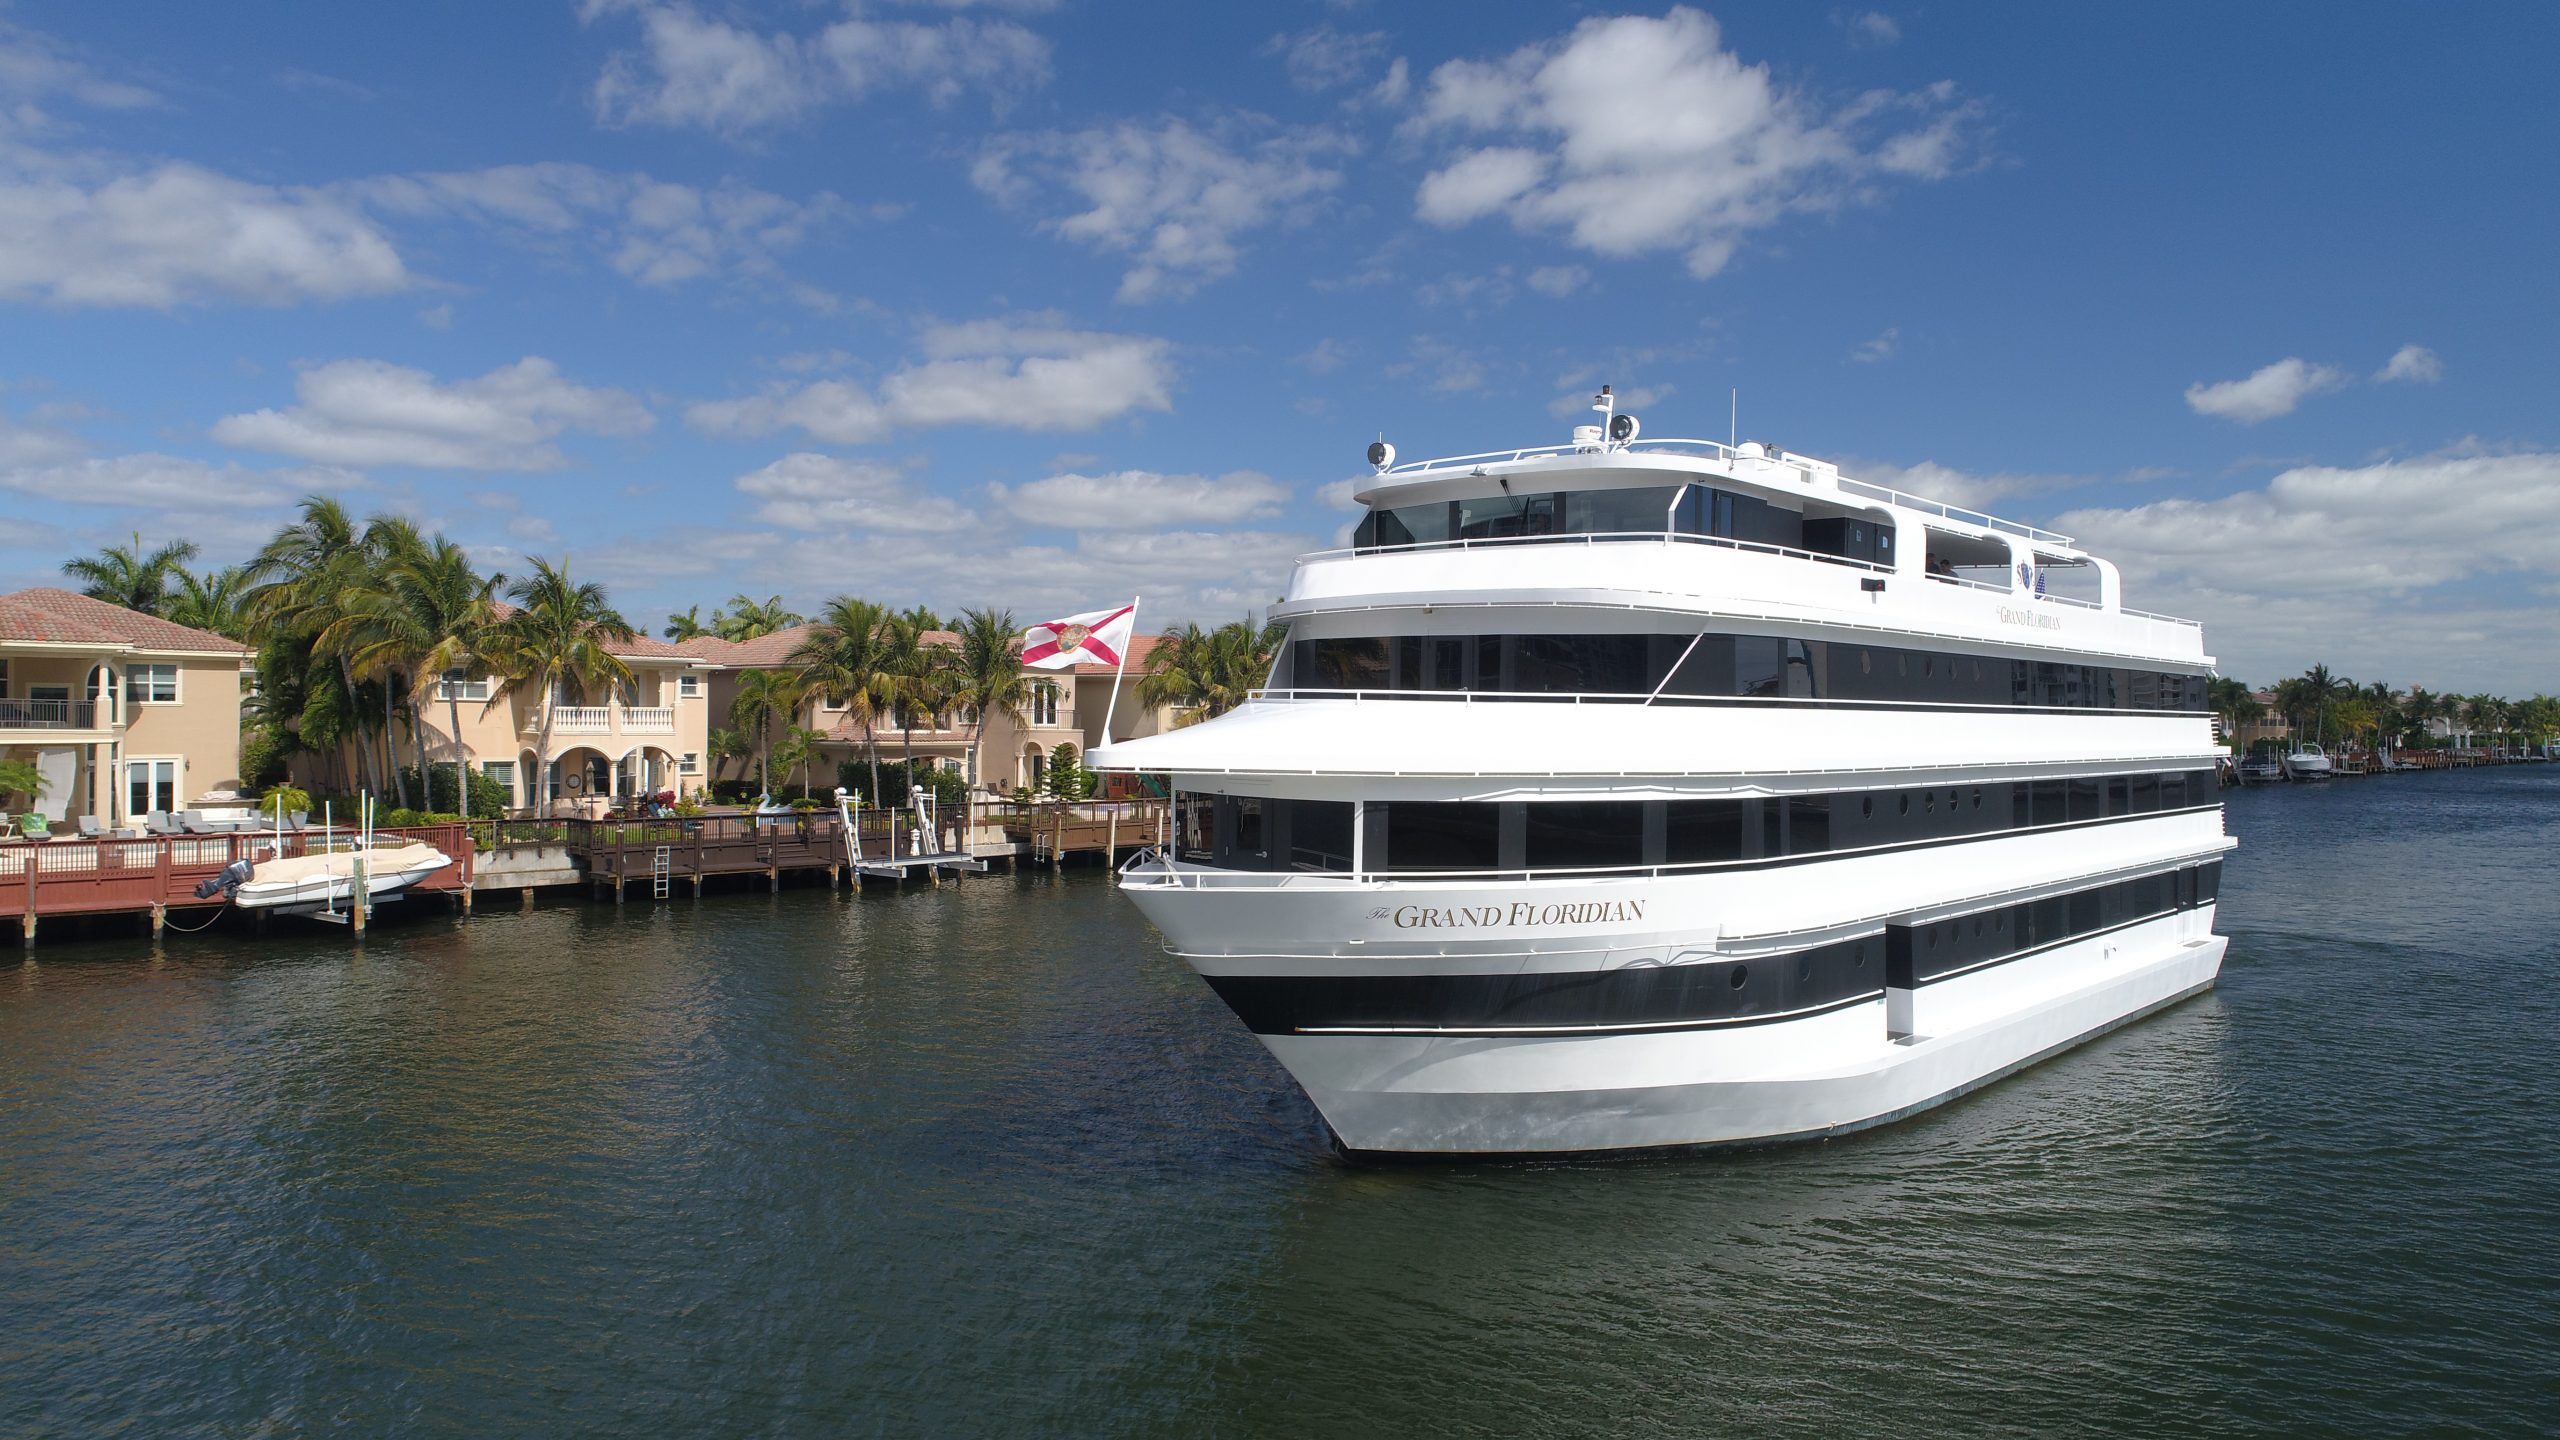 Charter One Fleet: party boat rental, yacht charters, corporate holiday party